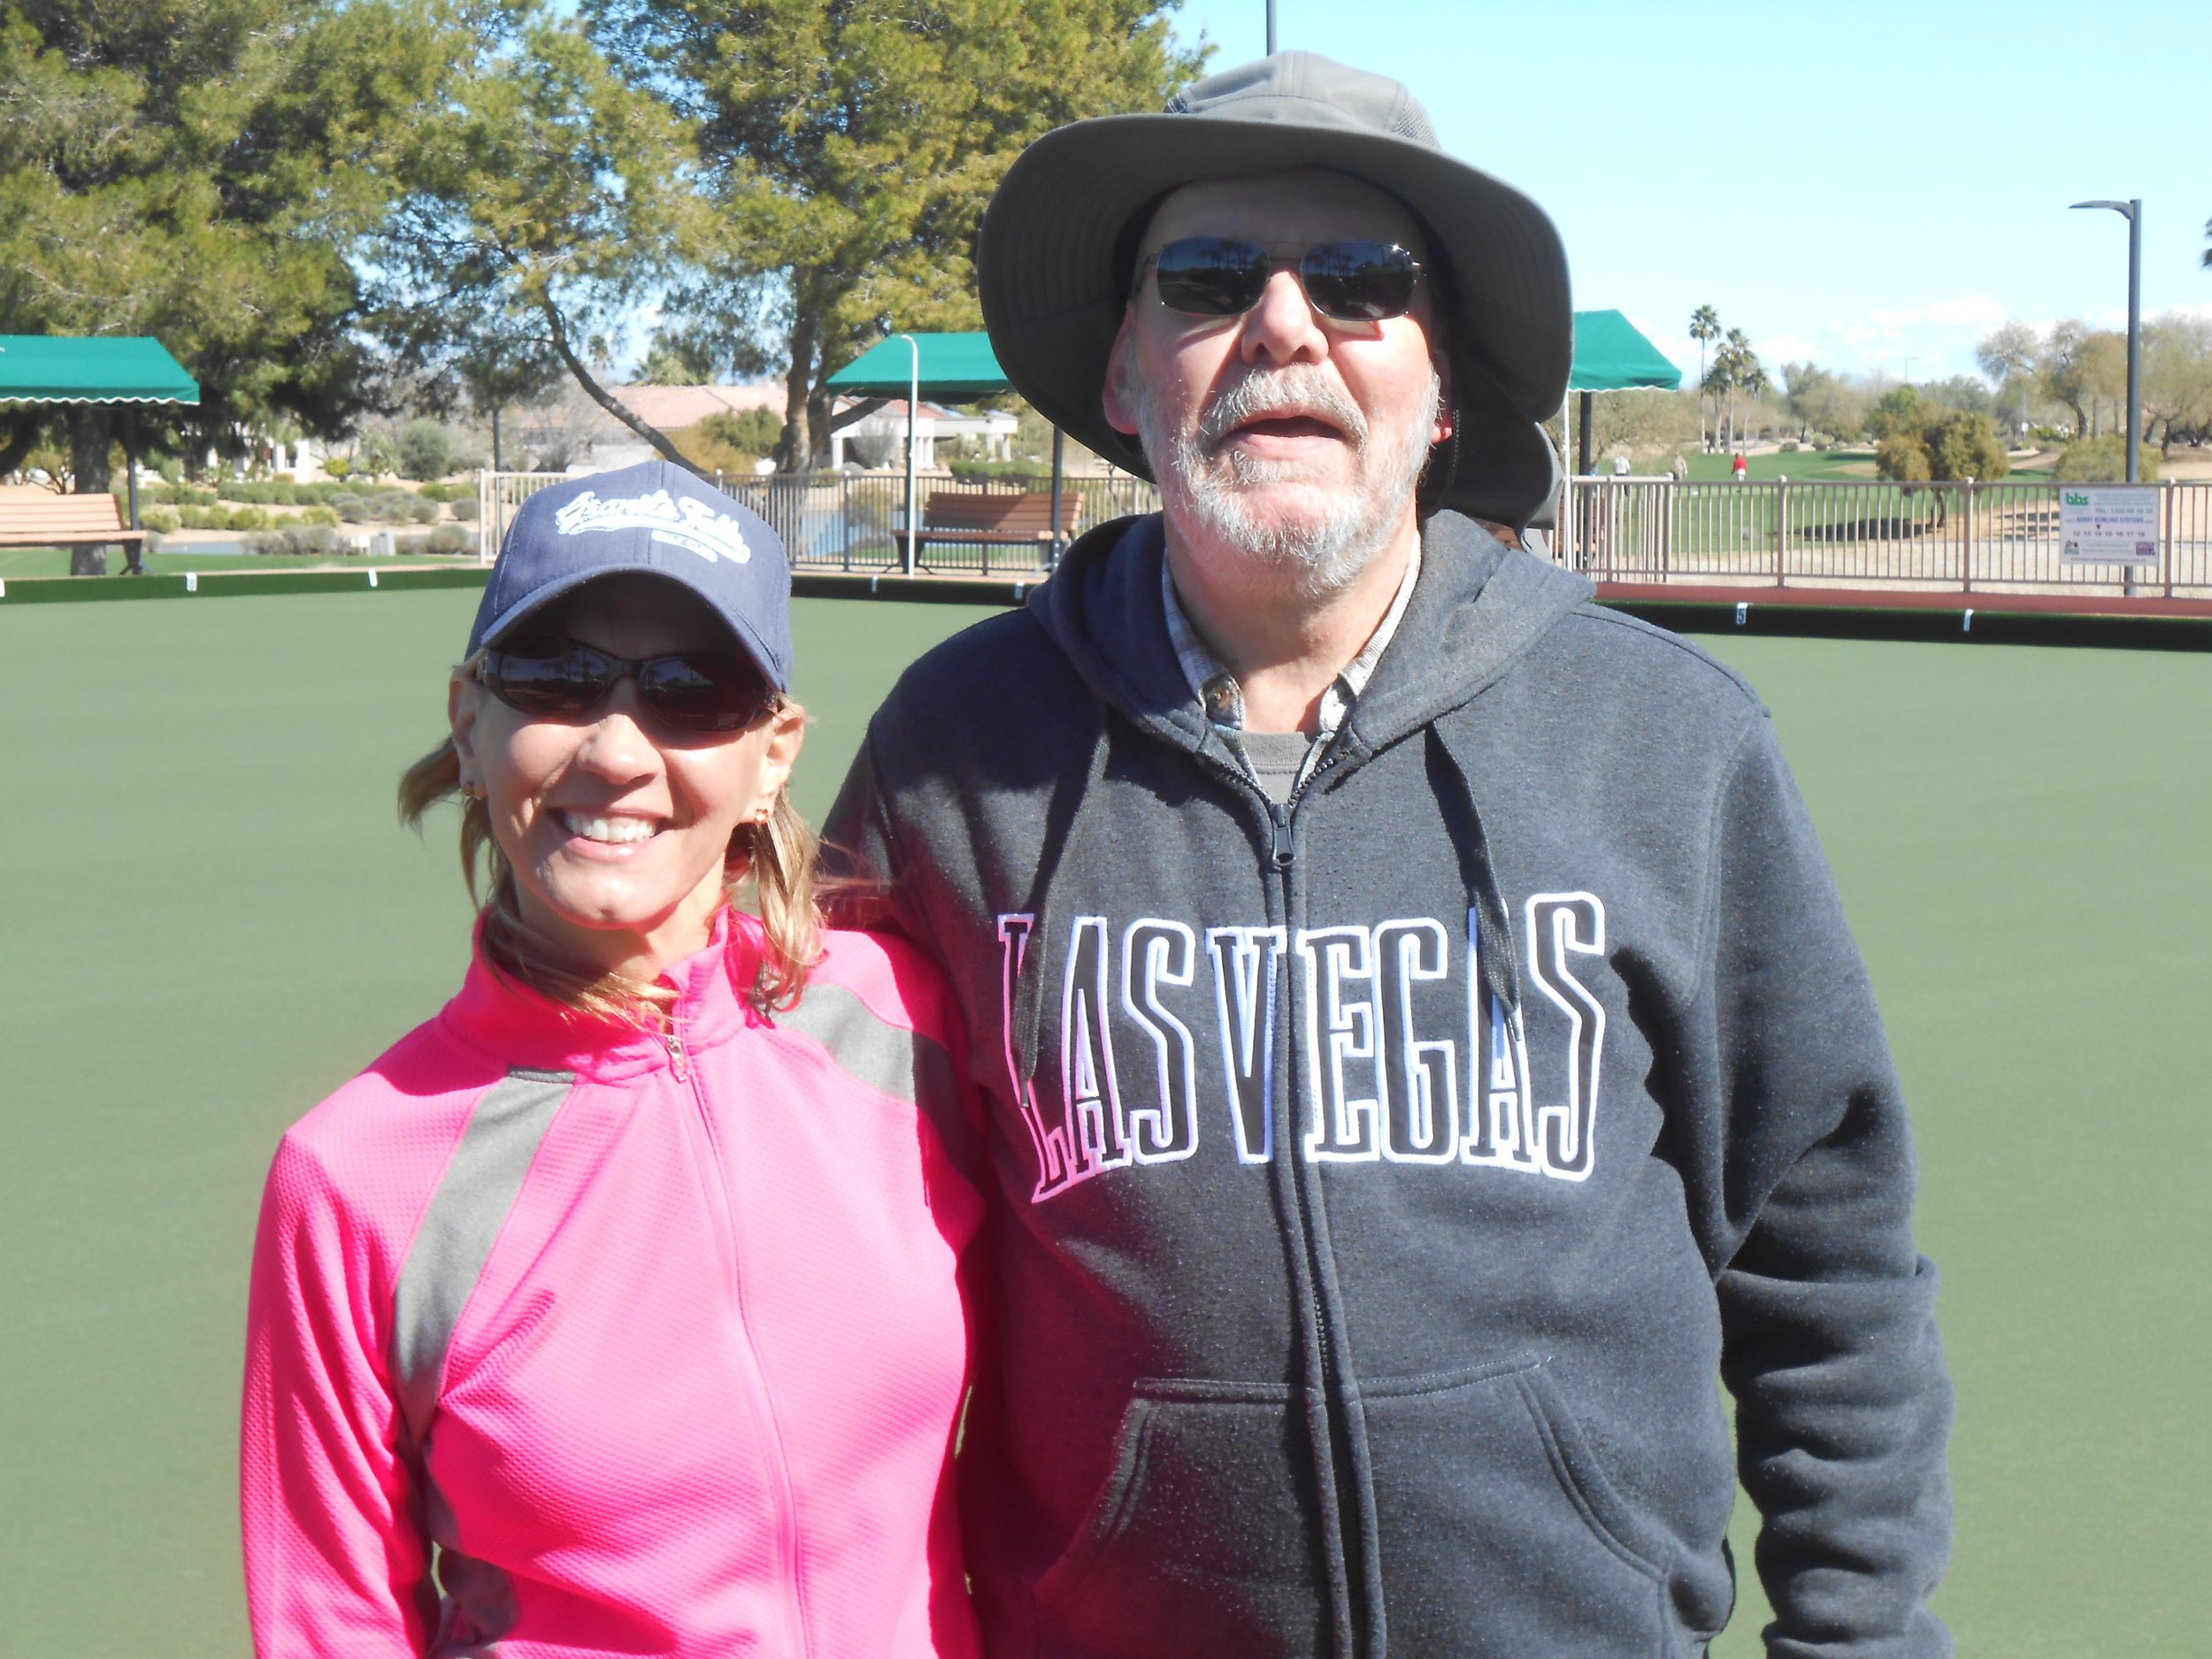 2019 Novice Singles - February 2019 - 1st - Ron Pencak (right)2nd - Jolynn Geglia (left)